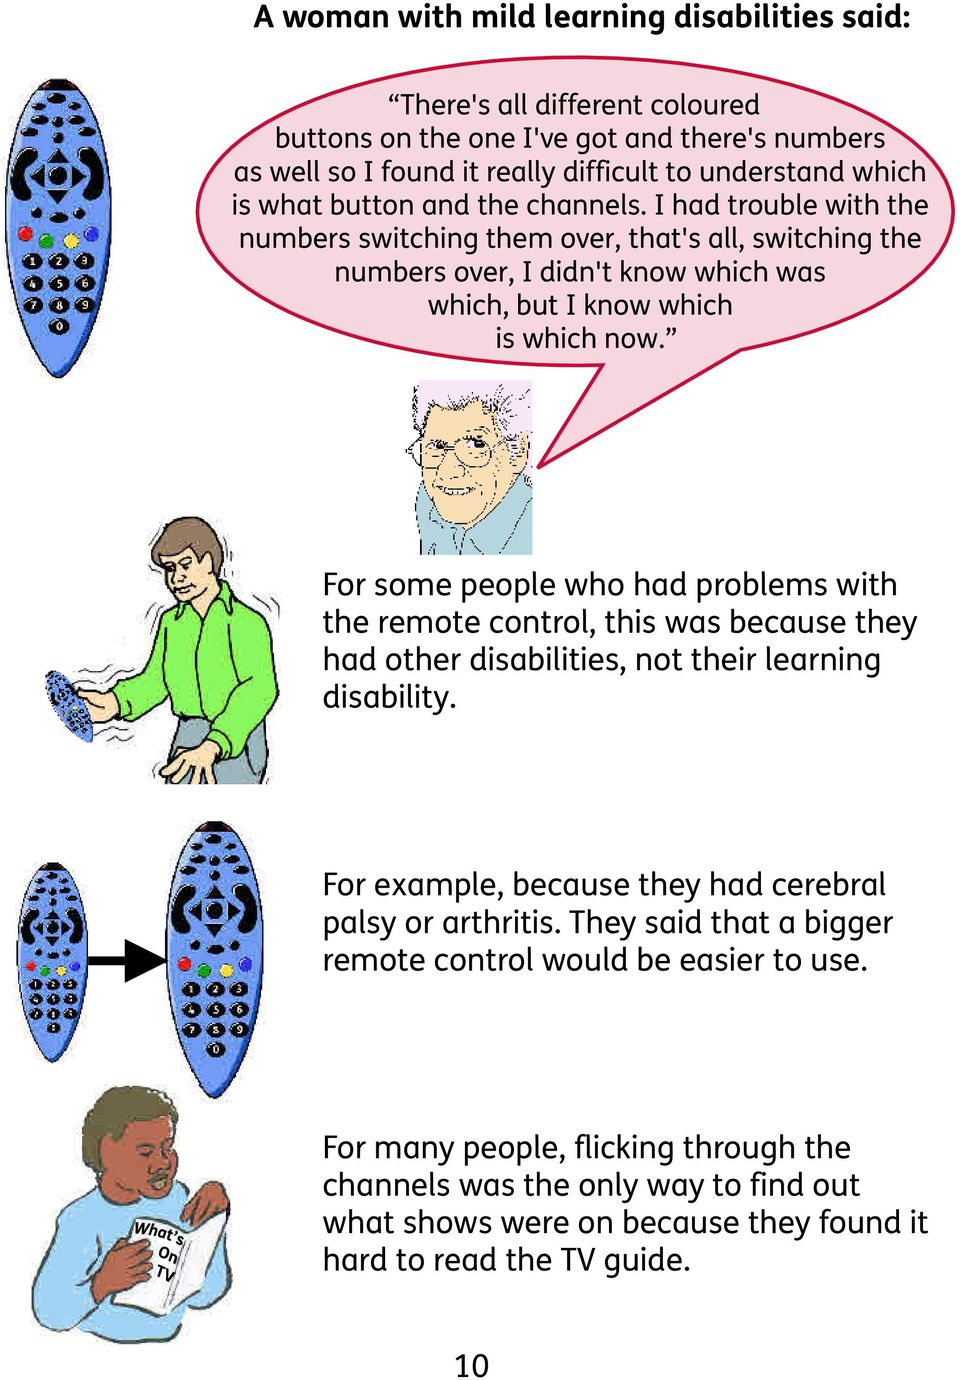 For some people who had problems with the remote control, this was because they had other disabilities, not their learning disability. For example, because they had cerebral palsy or arthritis.